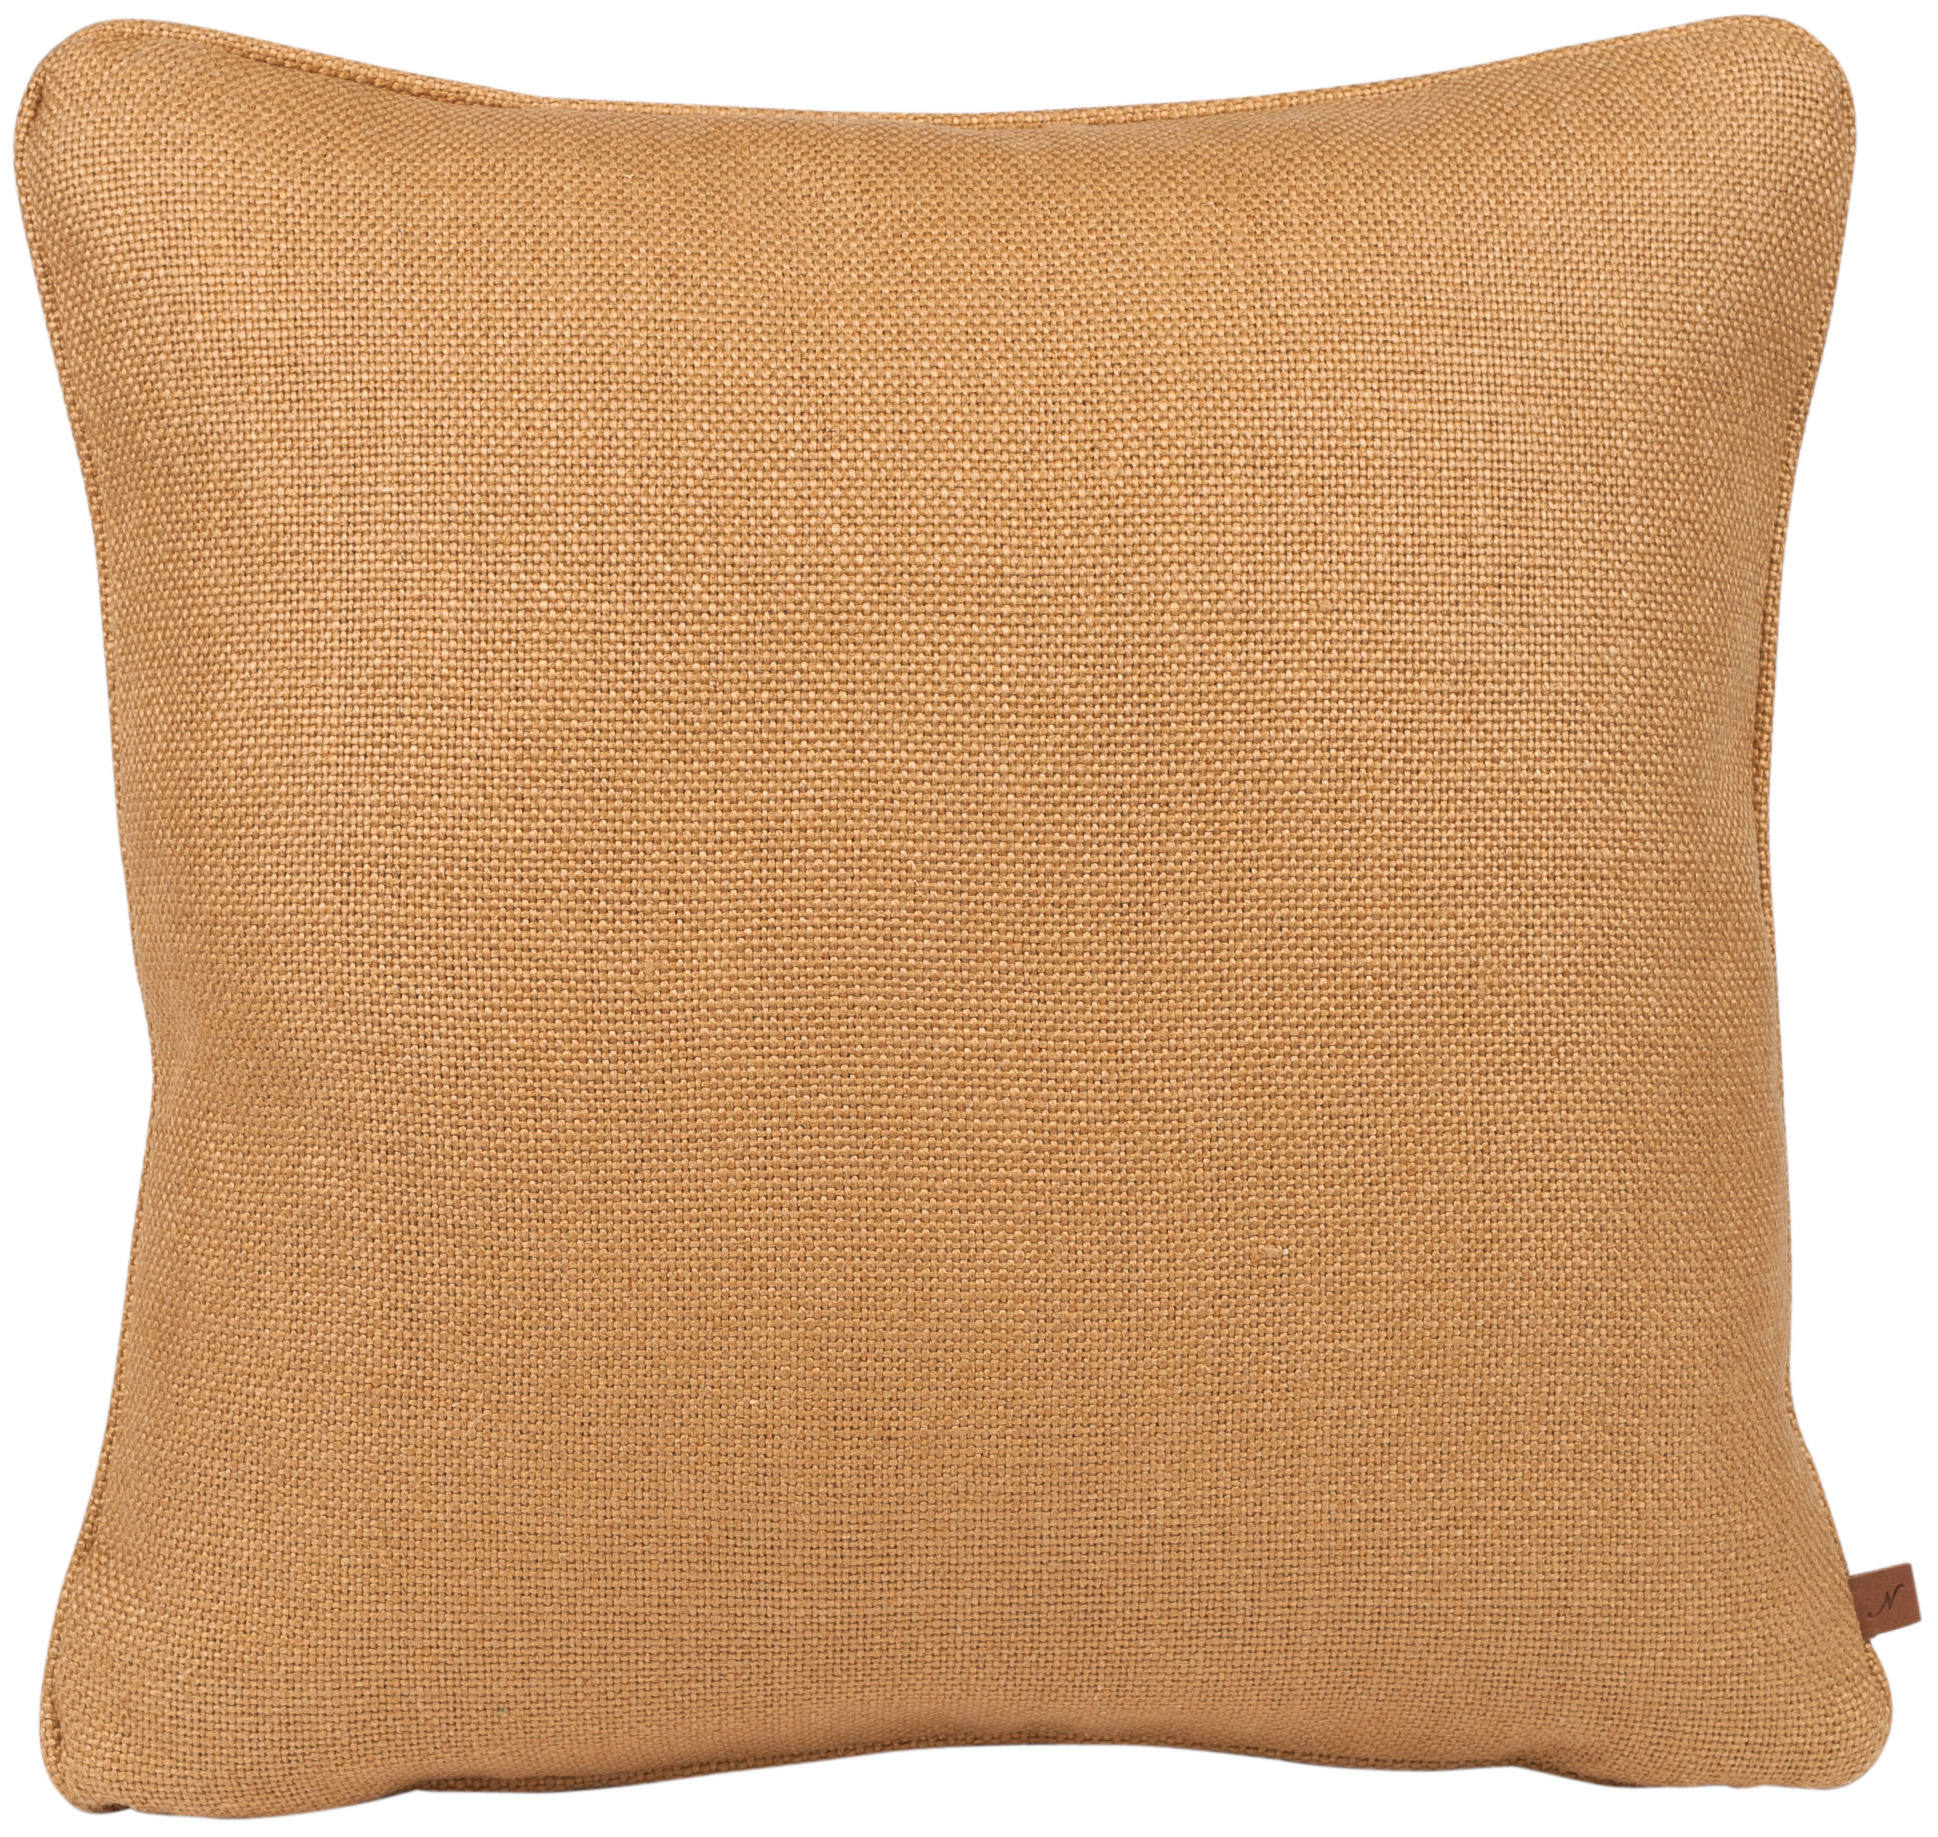 Florence Cushion 45x45cm, Finian Mustard